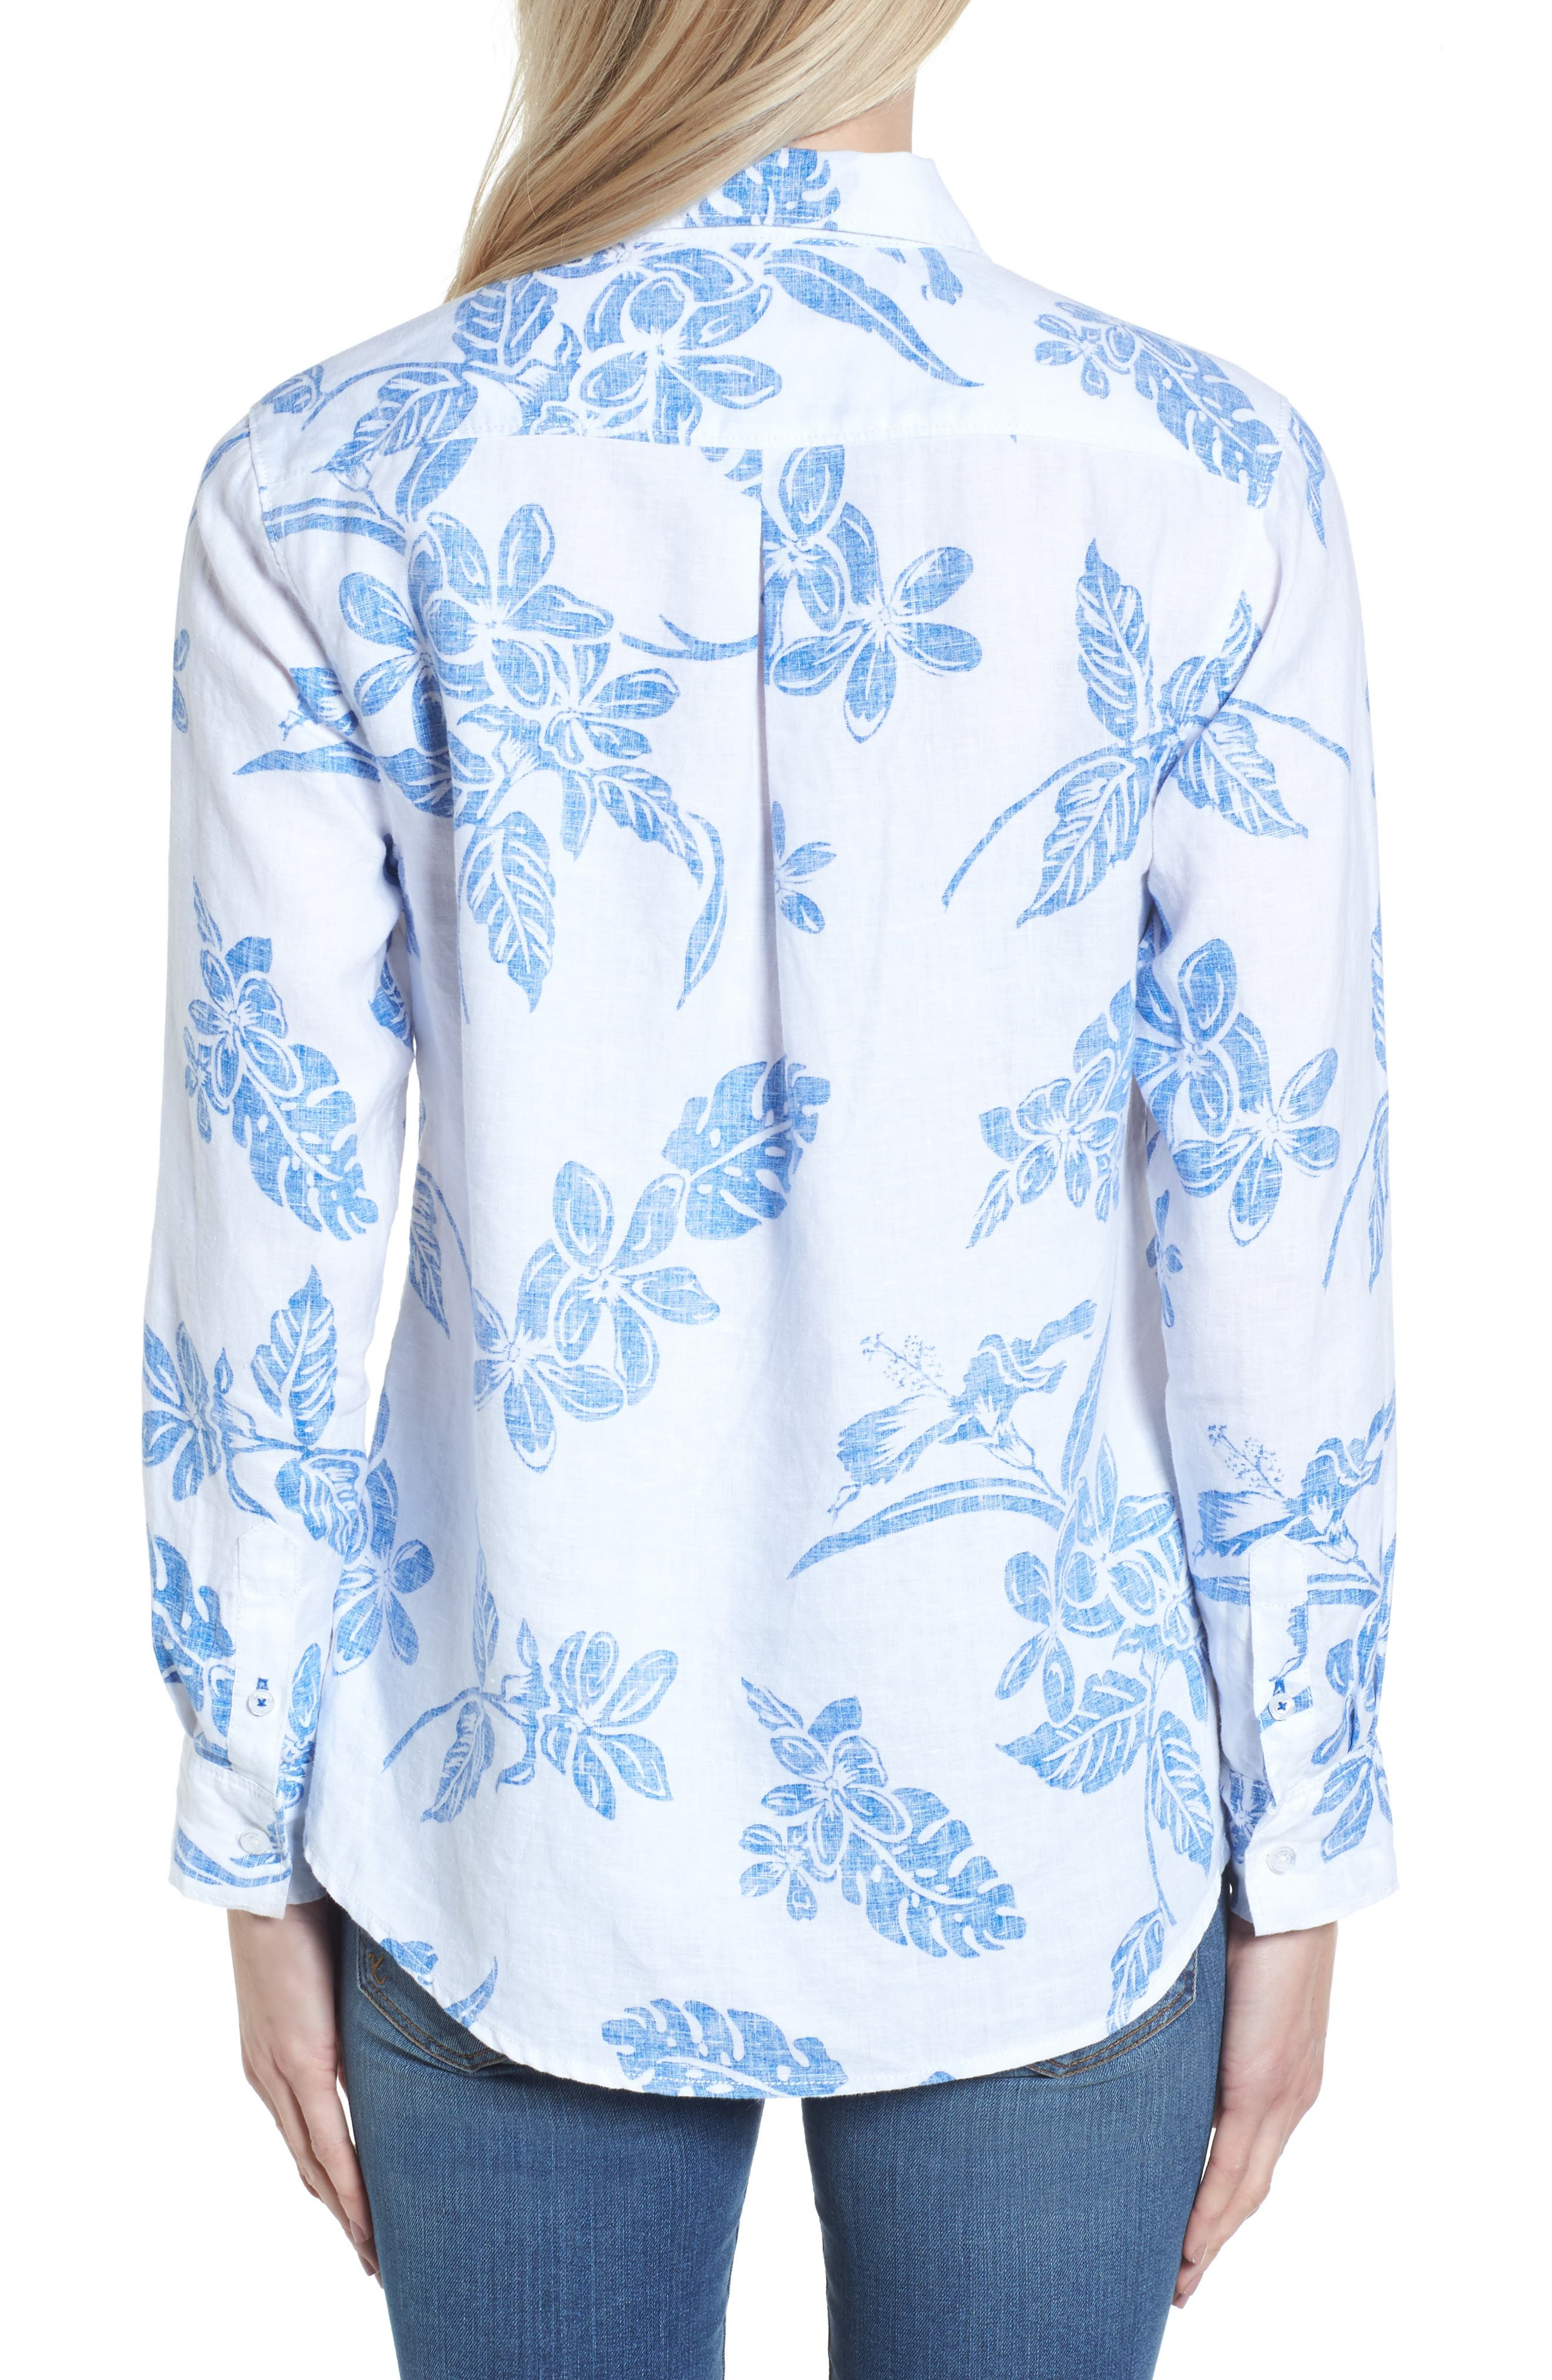 Hibiscus Hiatus Long Sleeve Top,                             Alternate thumbnail 2, color,                             White/ Cobalt